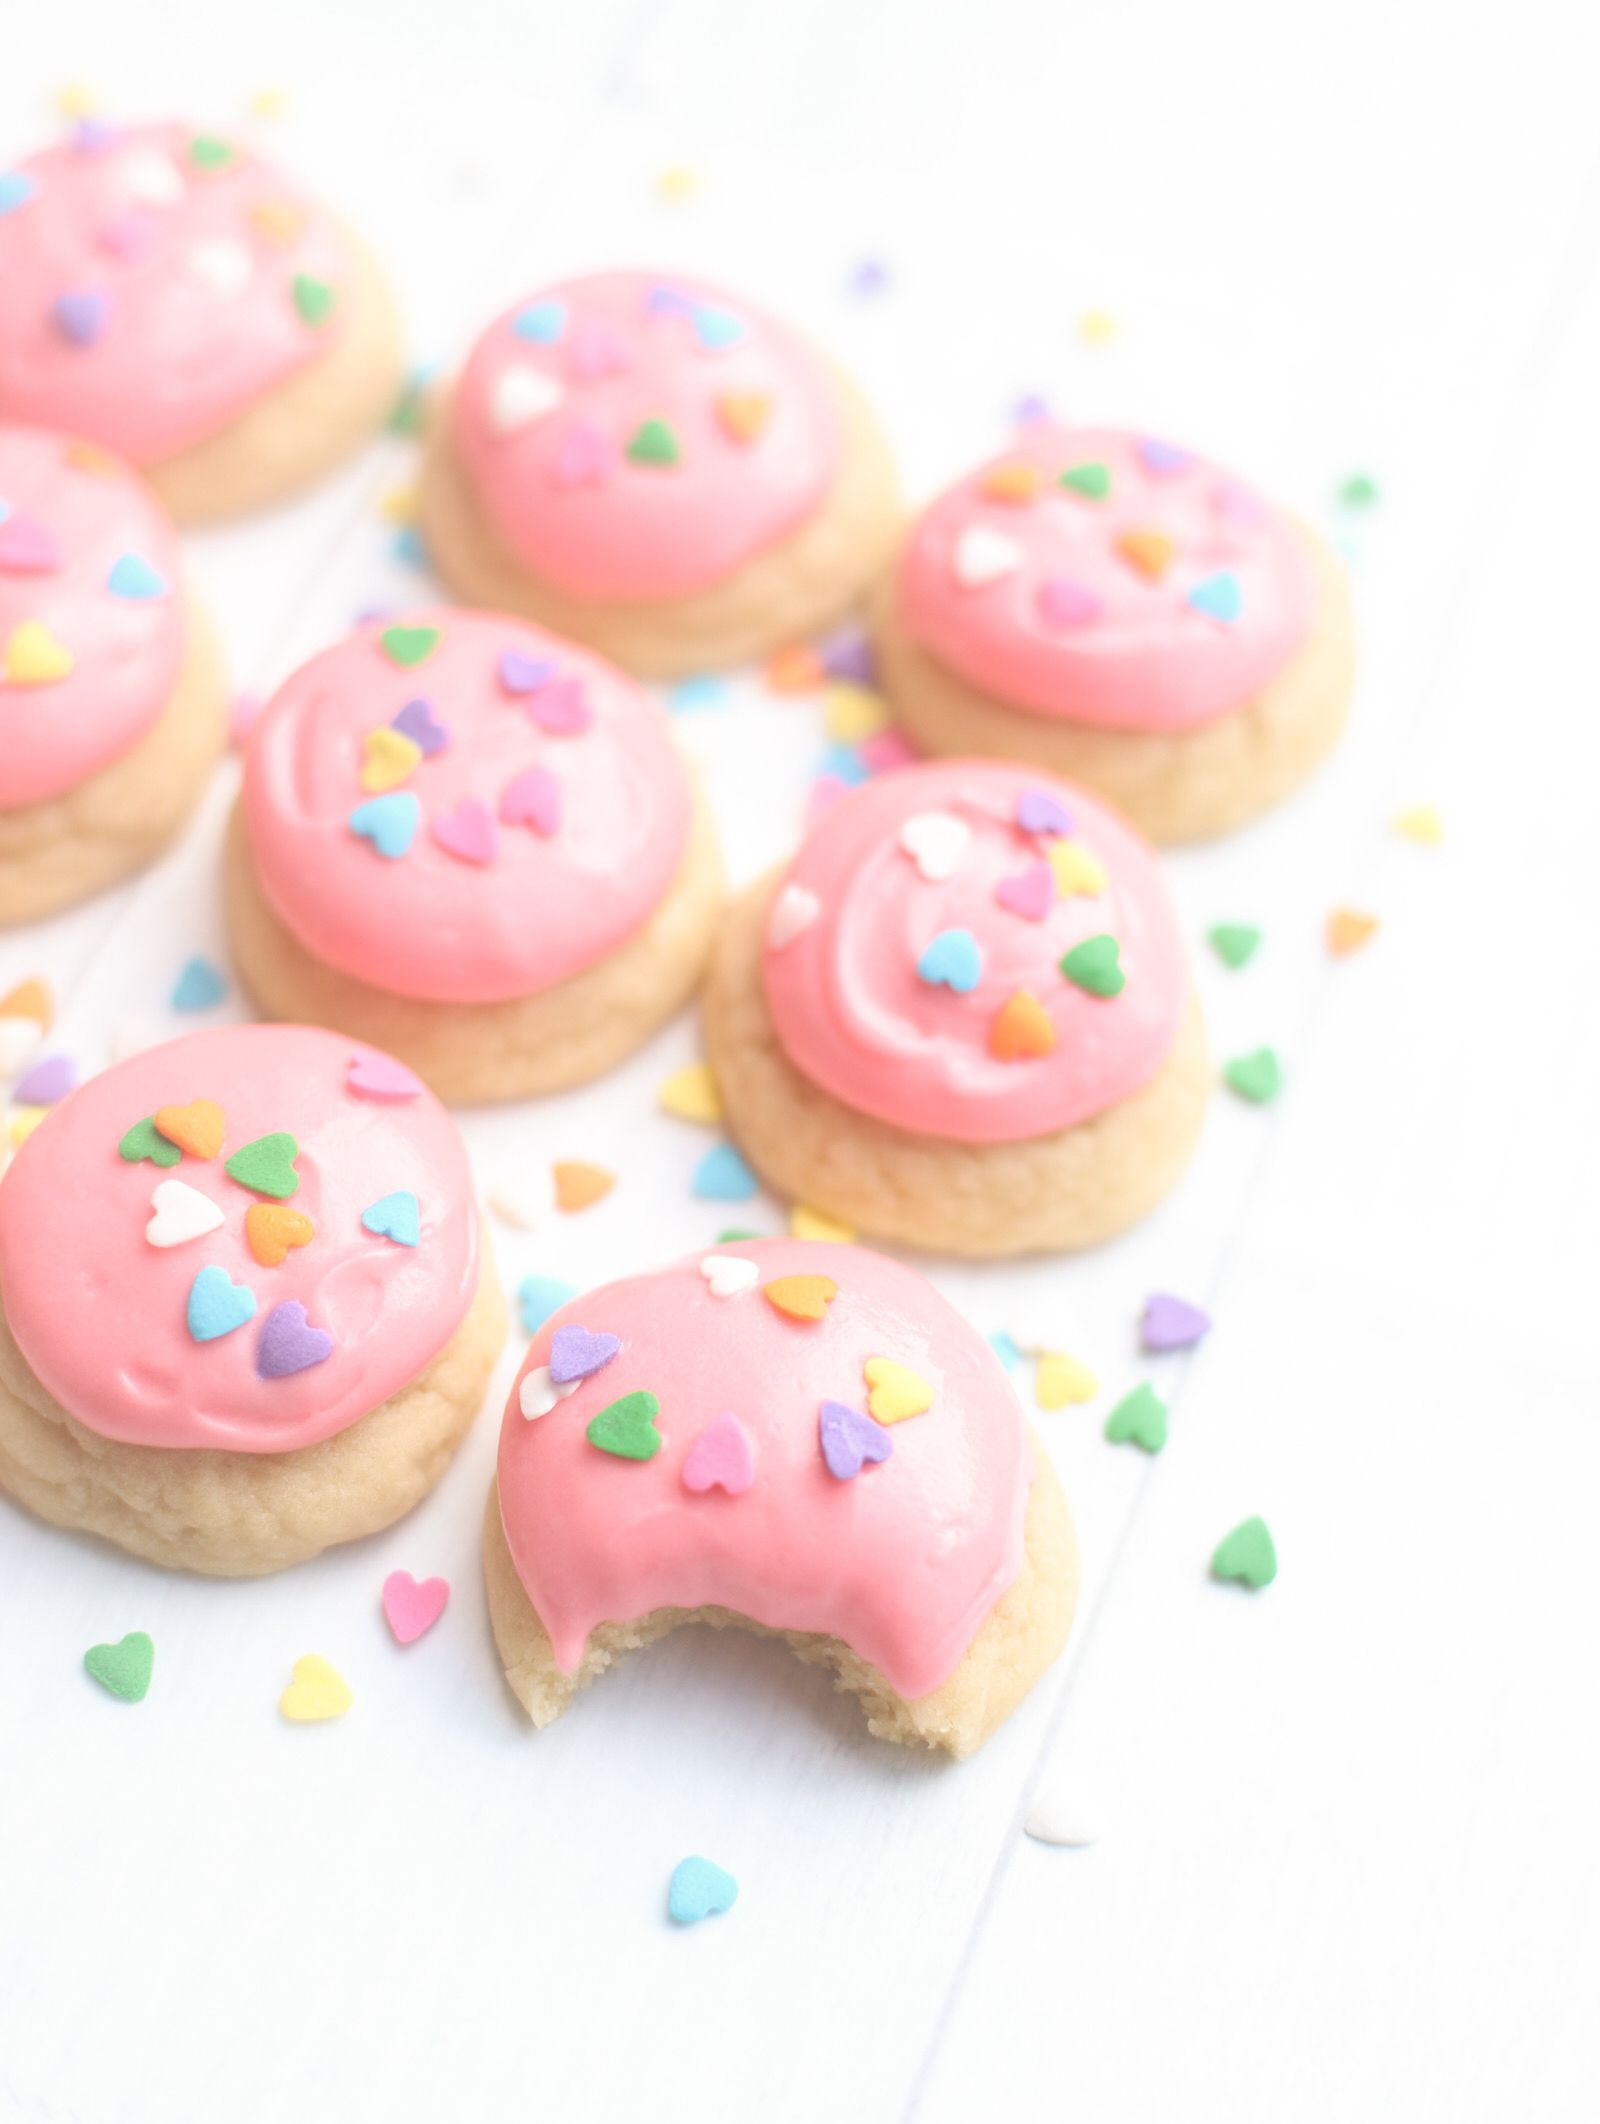 Dairy Free Lofthouse Cookies; a.k.a., Pillowy Soft Frosted